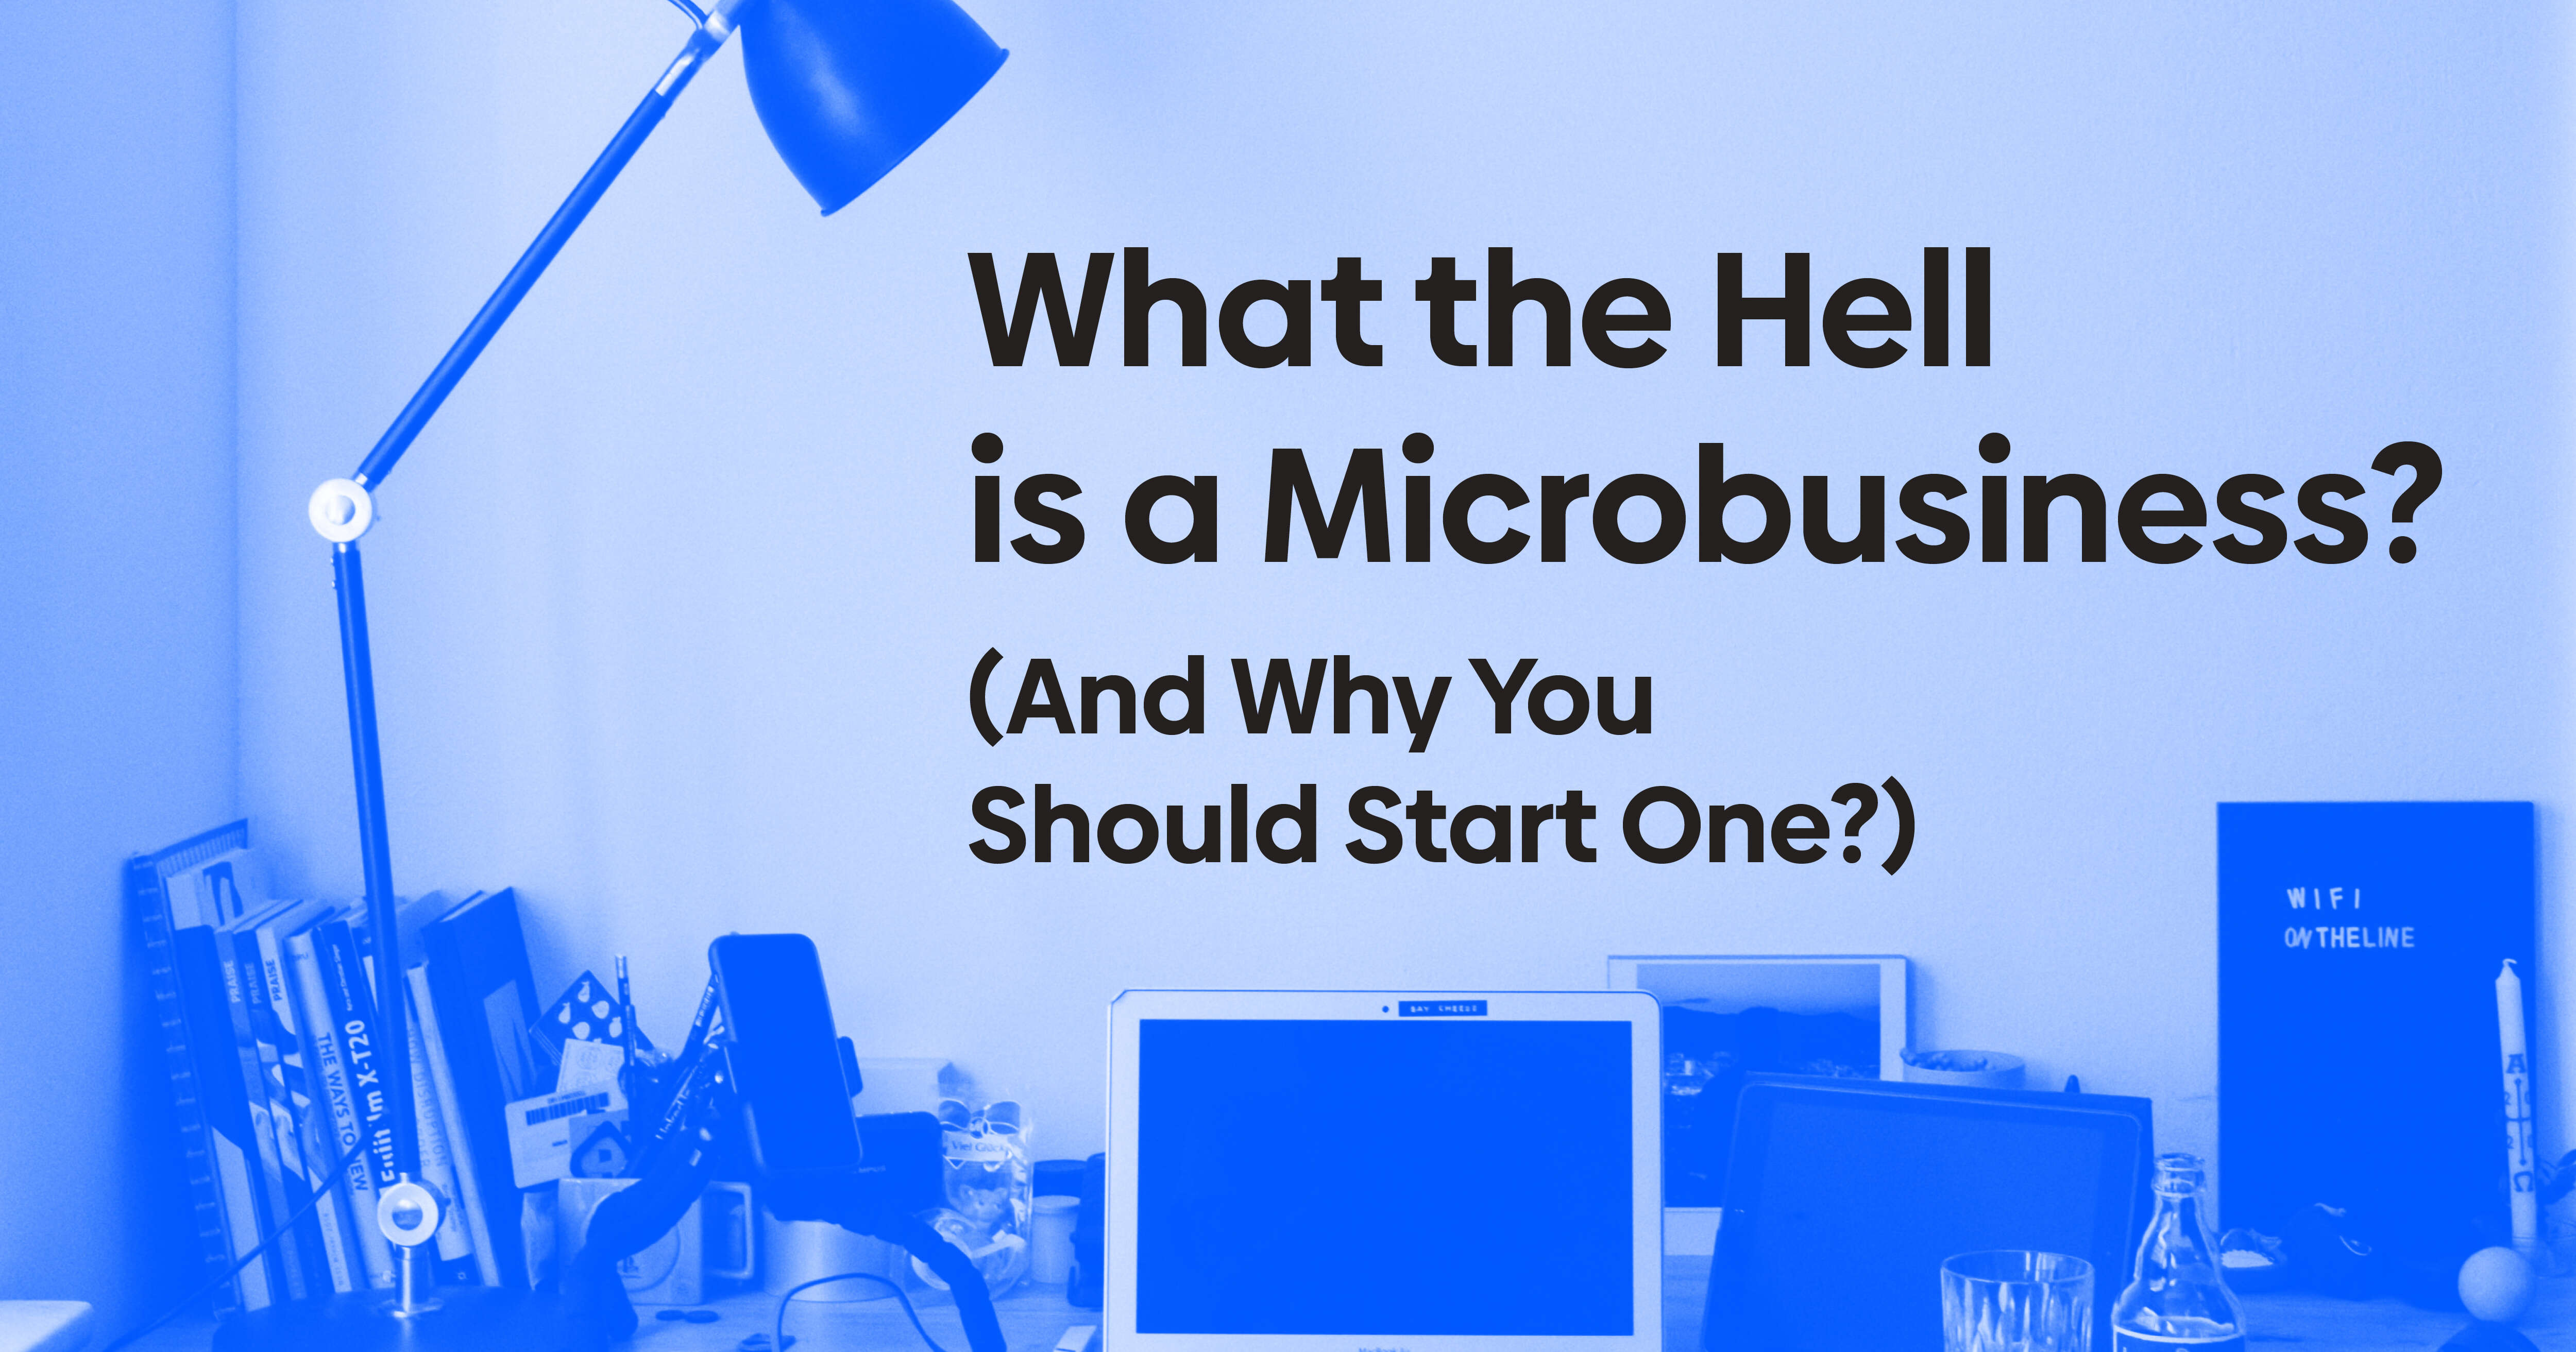 What the Hell is a Microbusiness? (And Why You Should Start One?)